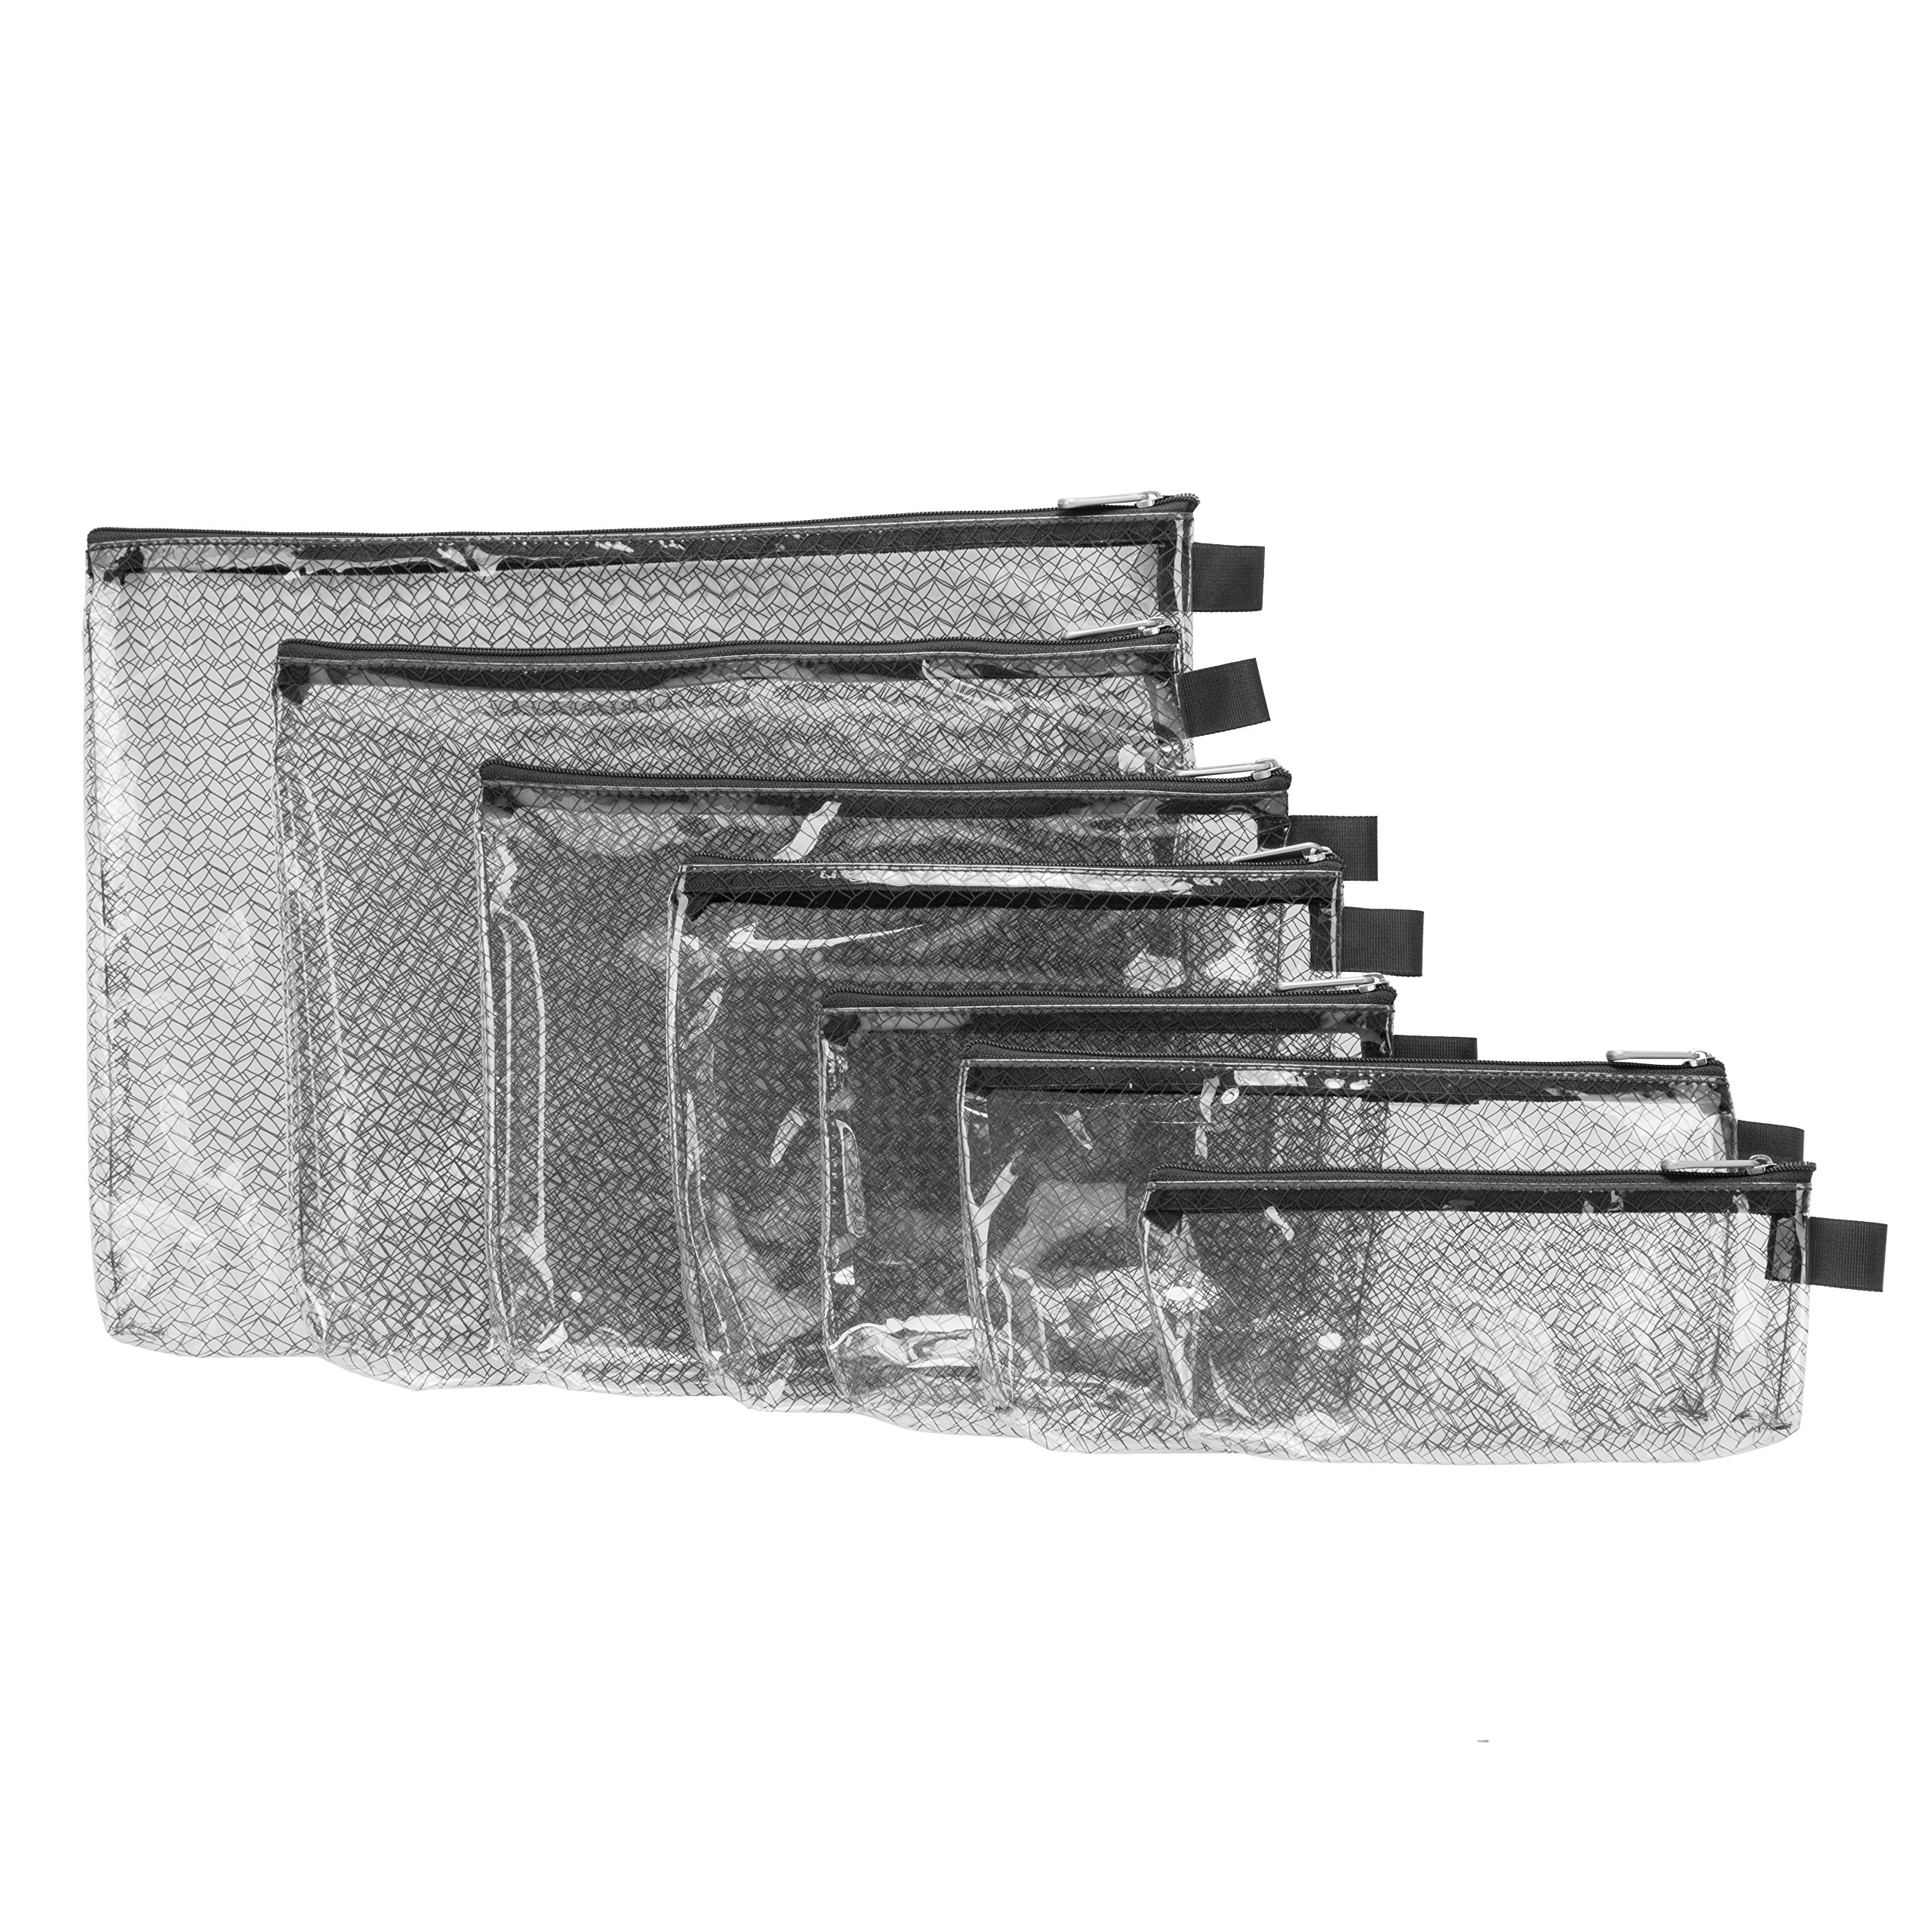 Travelon Set of 7 Packing Envelopes, Clear with Black Trim, Assorted Sizes